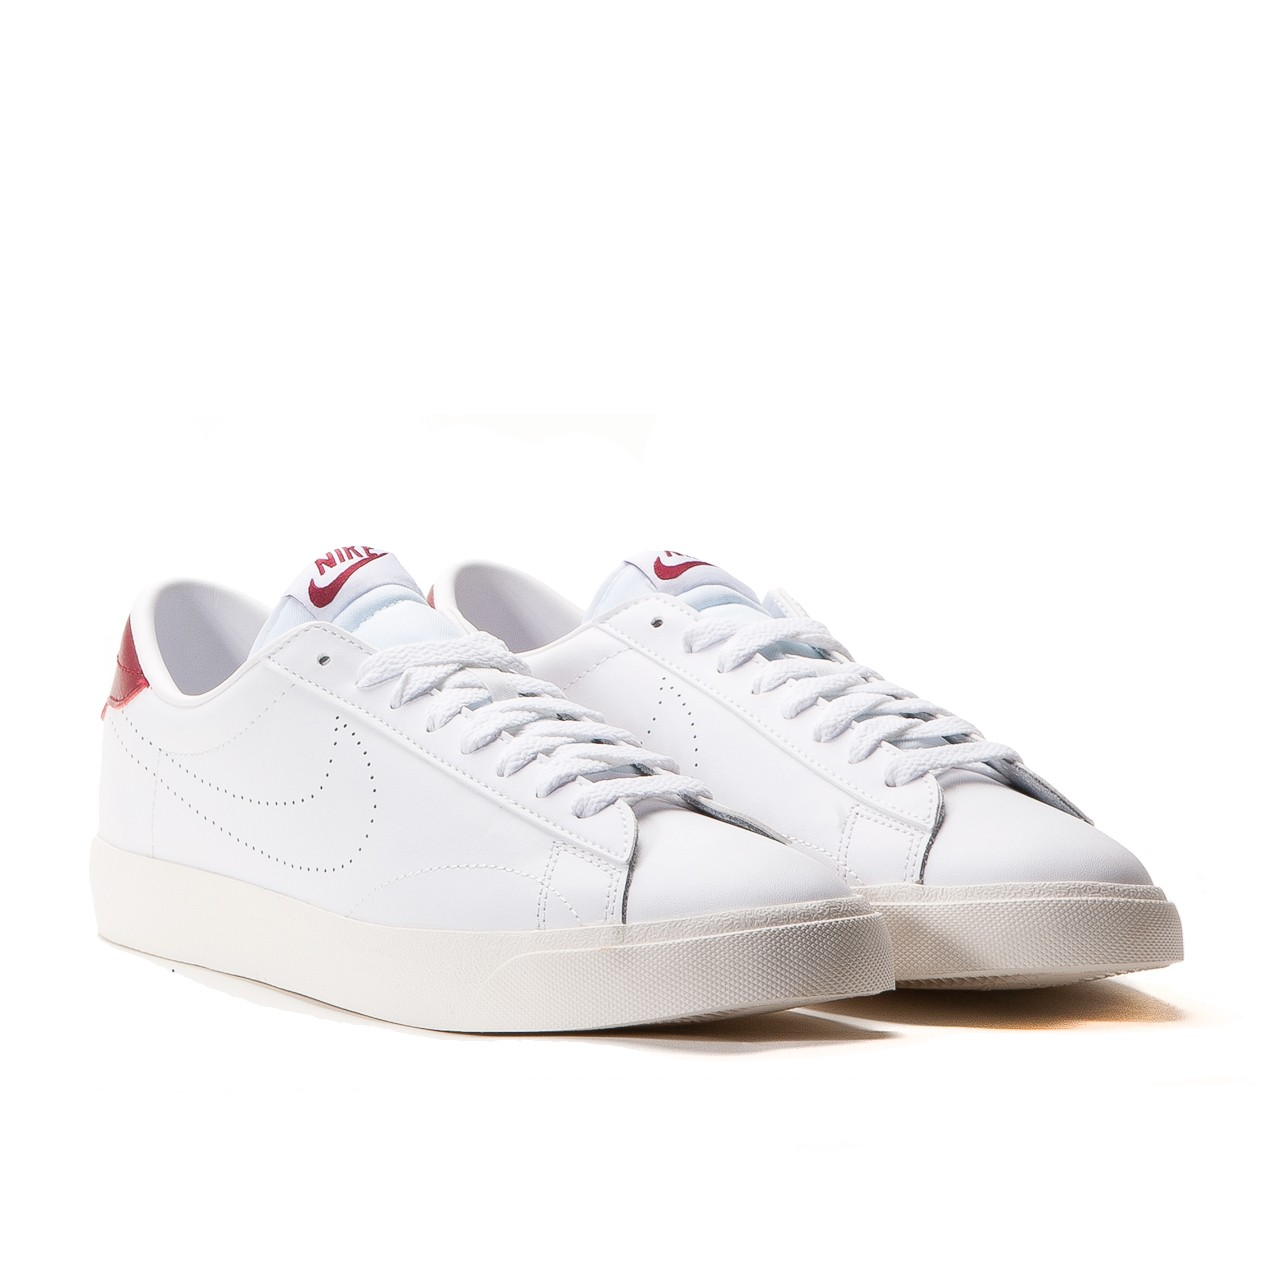 check out 3d2bf 4f64d nike-tennis-classic-ac-white-chianti-3